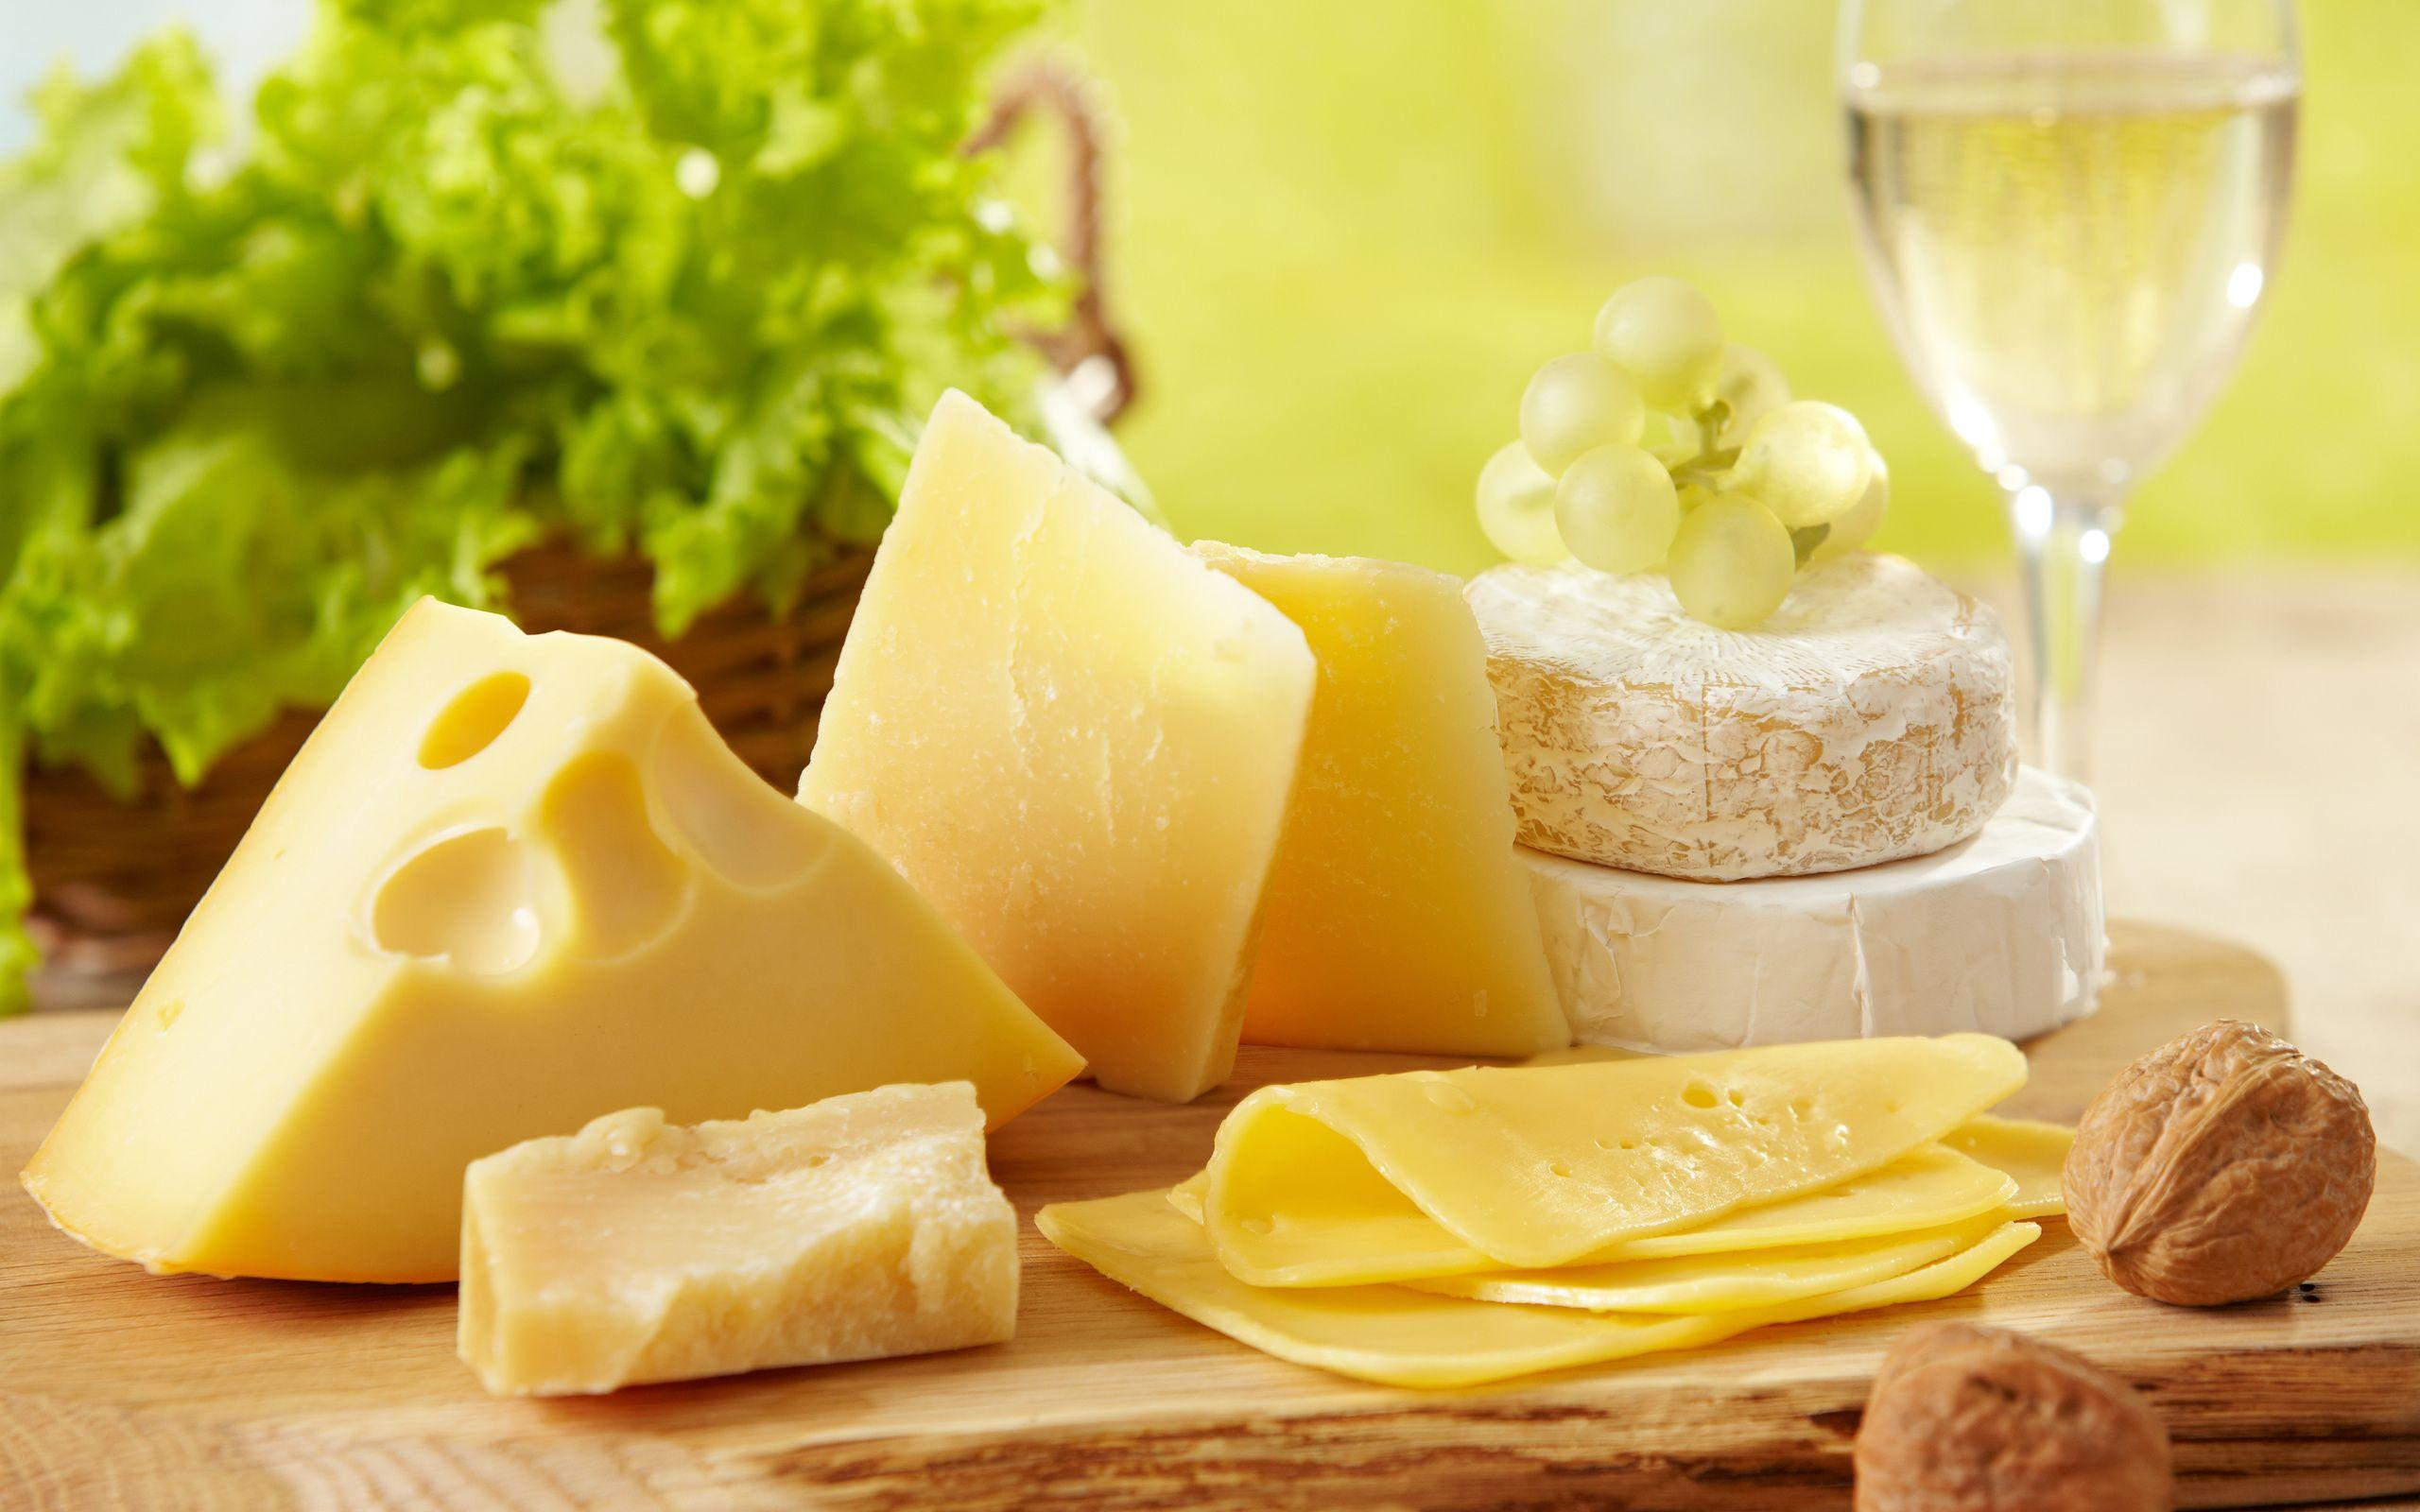 Image result for cheese image in hd